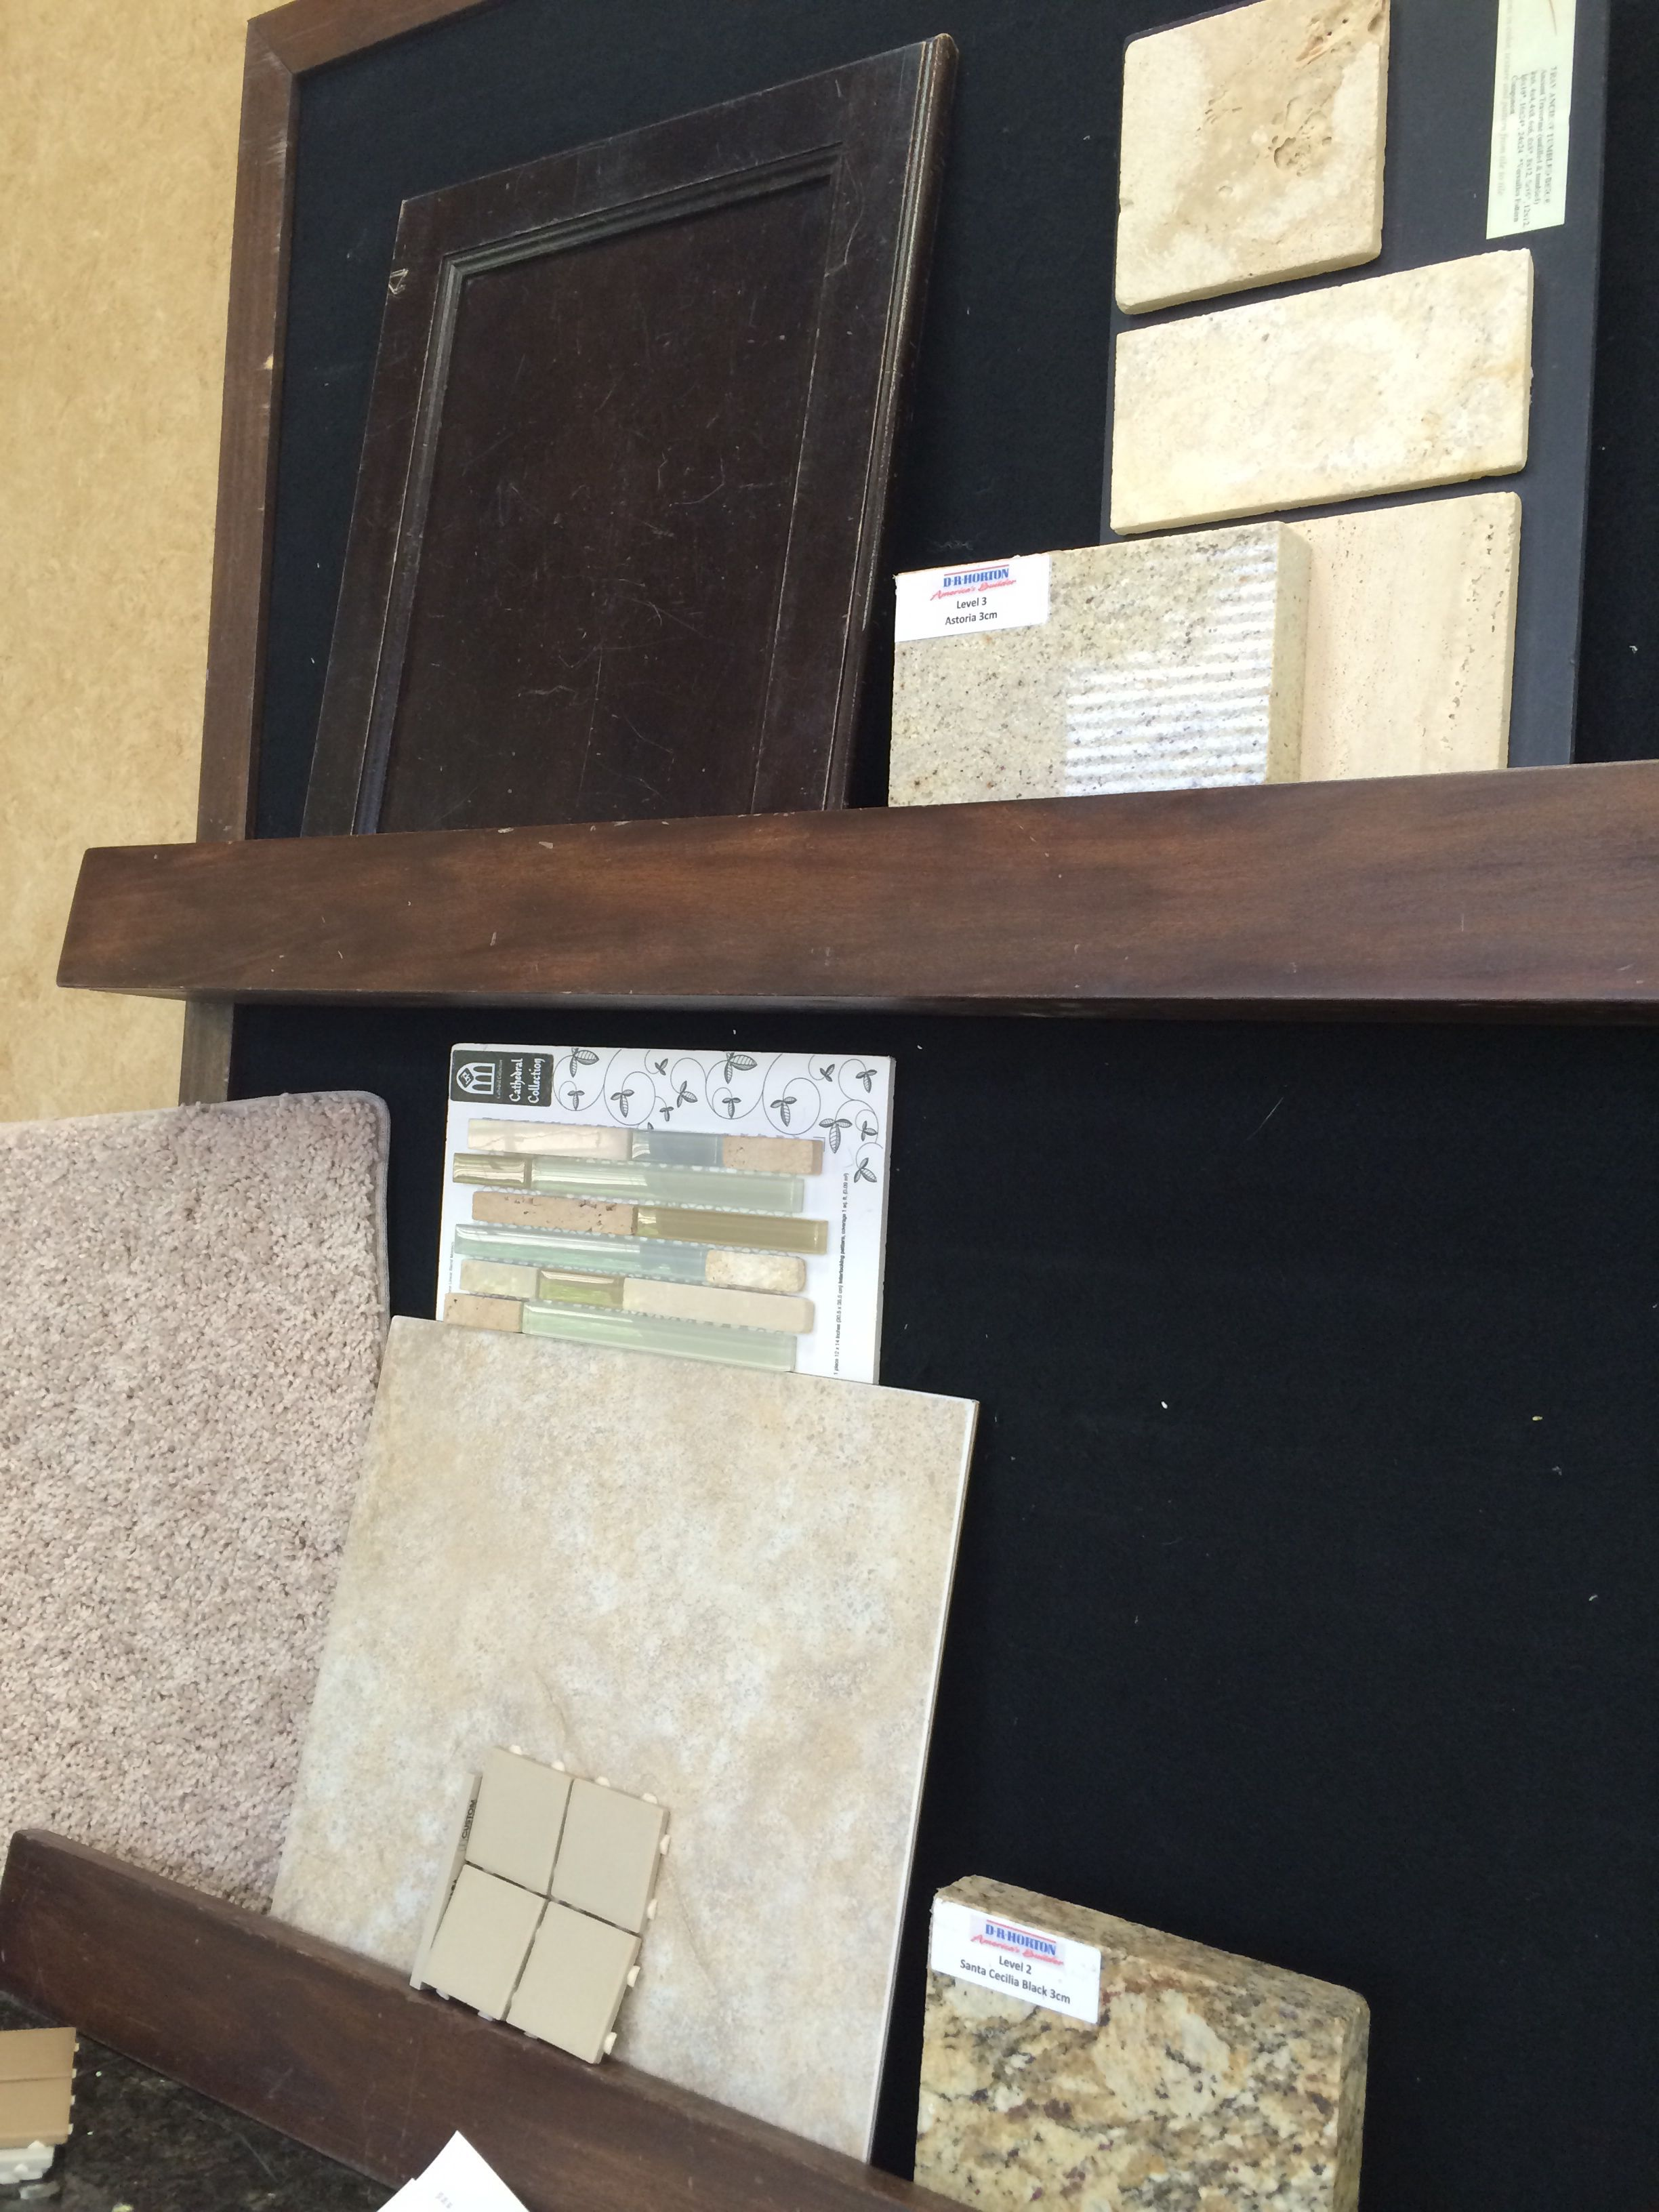 Color Palette For New Home Dr Horton Twilight Cabinets Emser Beige Tile Astoria Granite